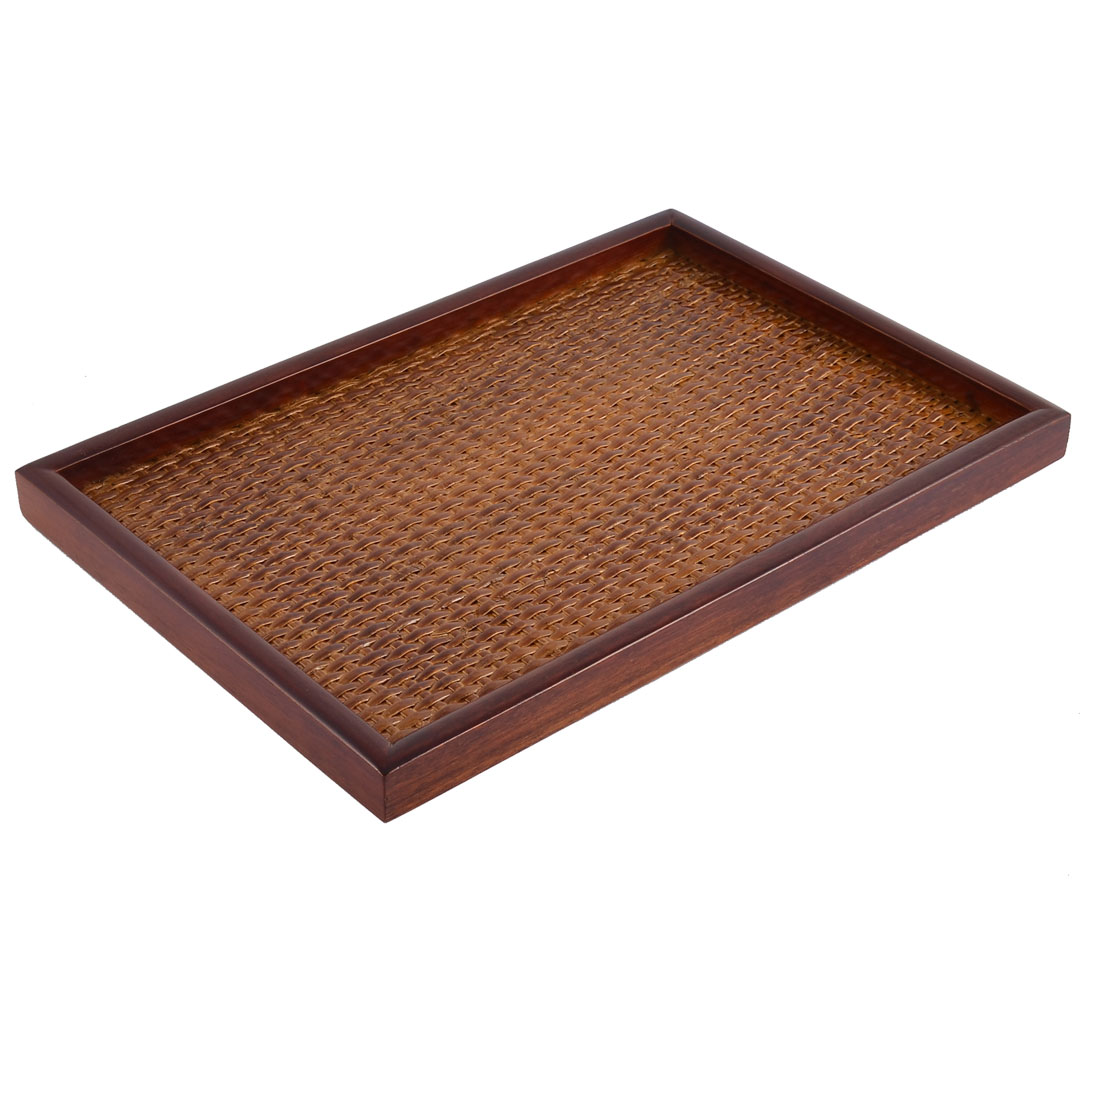 Restaurant Wood Rectangle Shape Lunch Food Serving Tray Container Brown